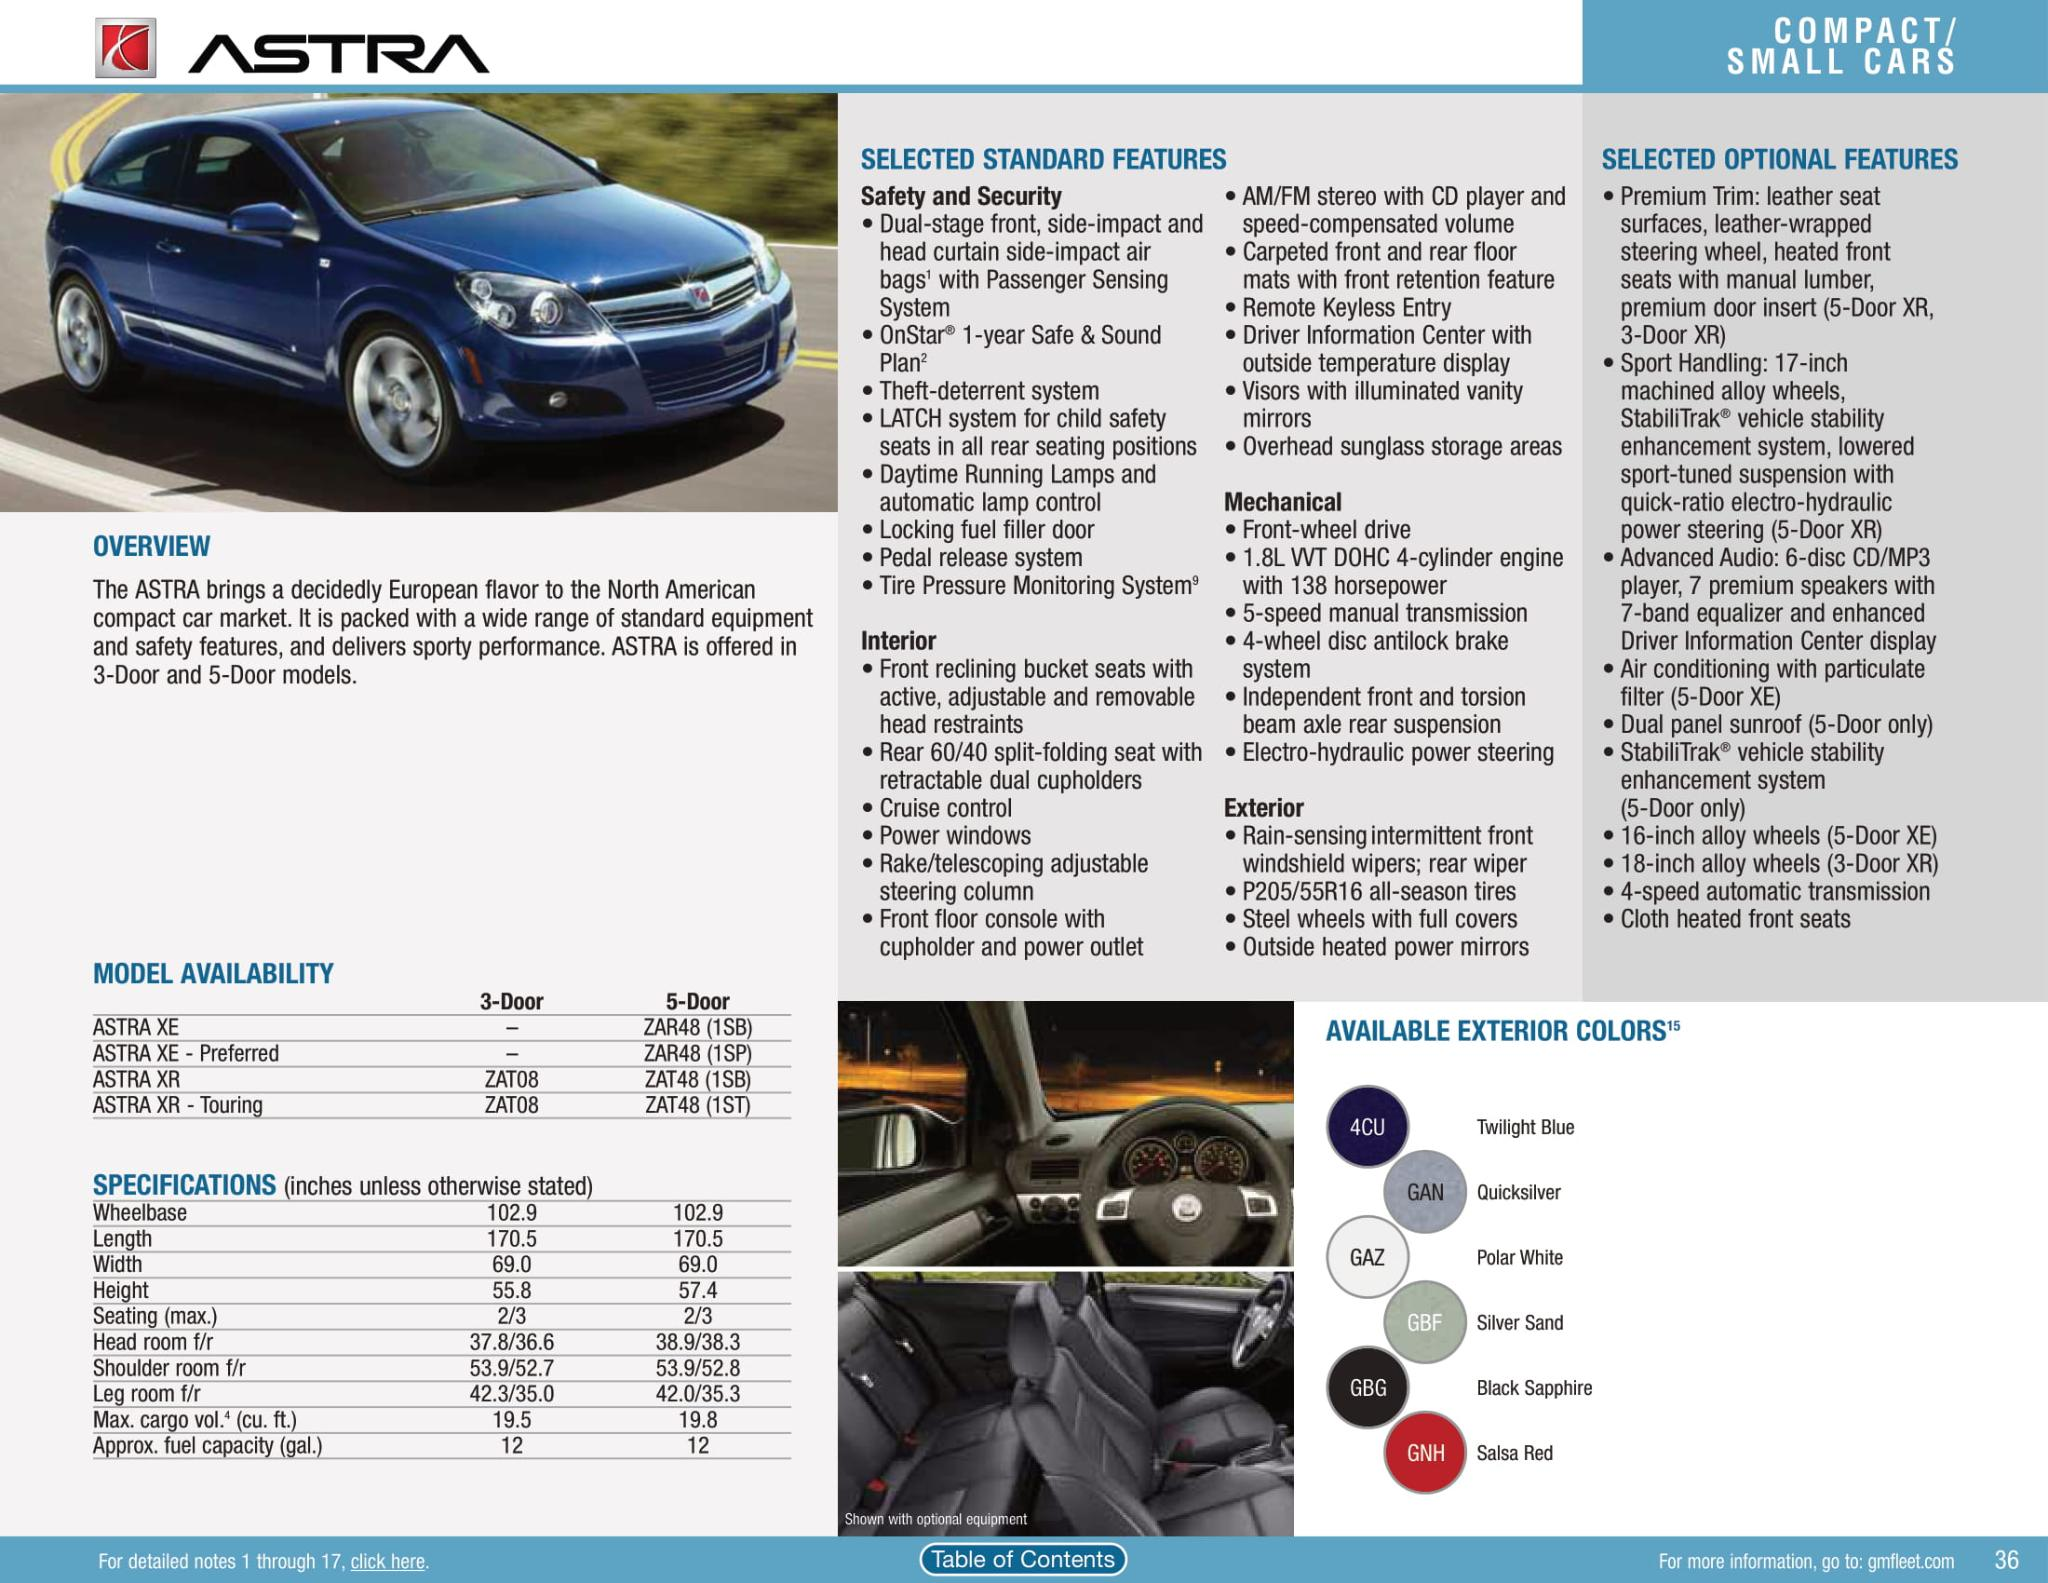 Exterior 2010 Color Options for the Saturn Astra